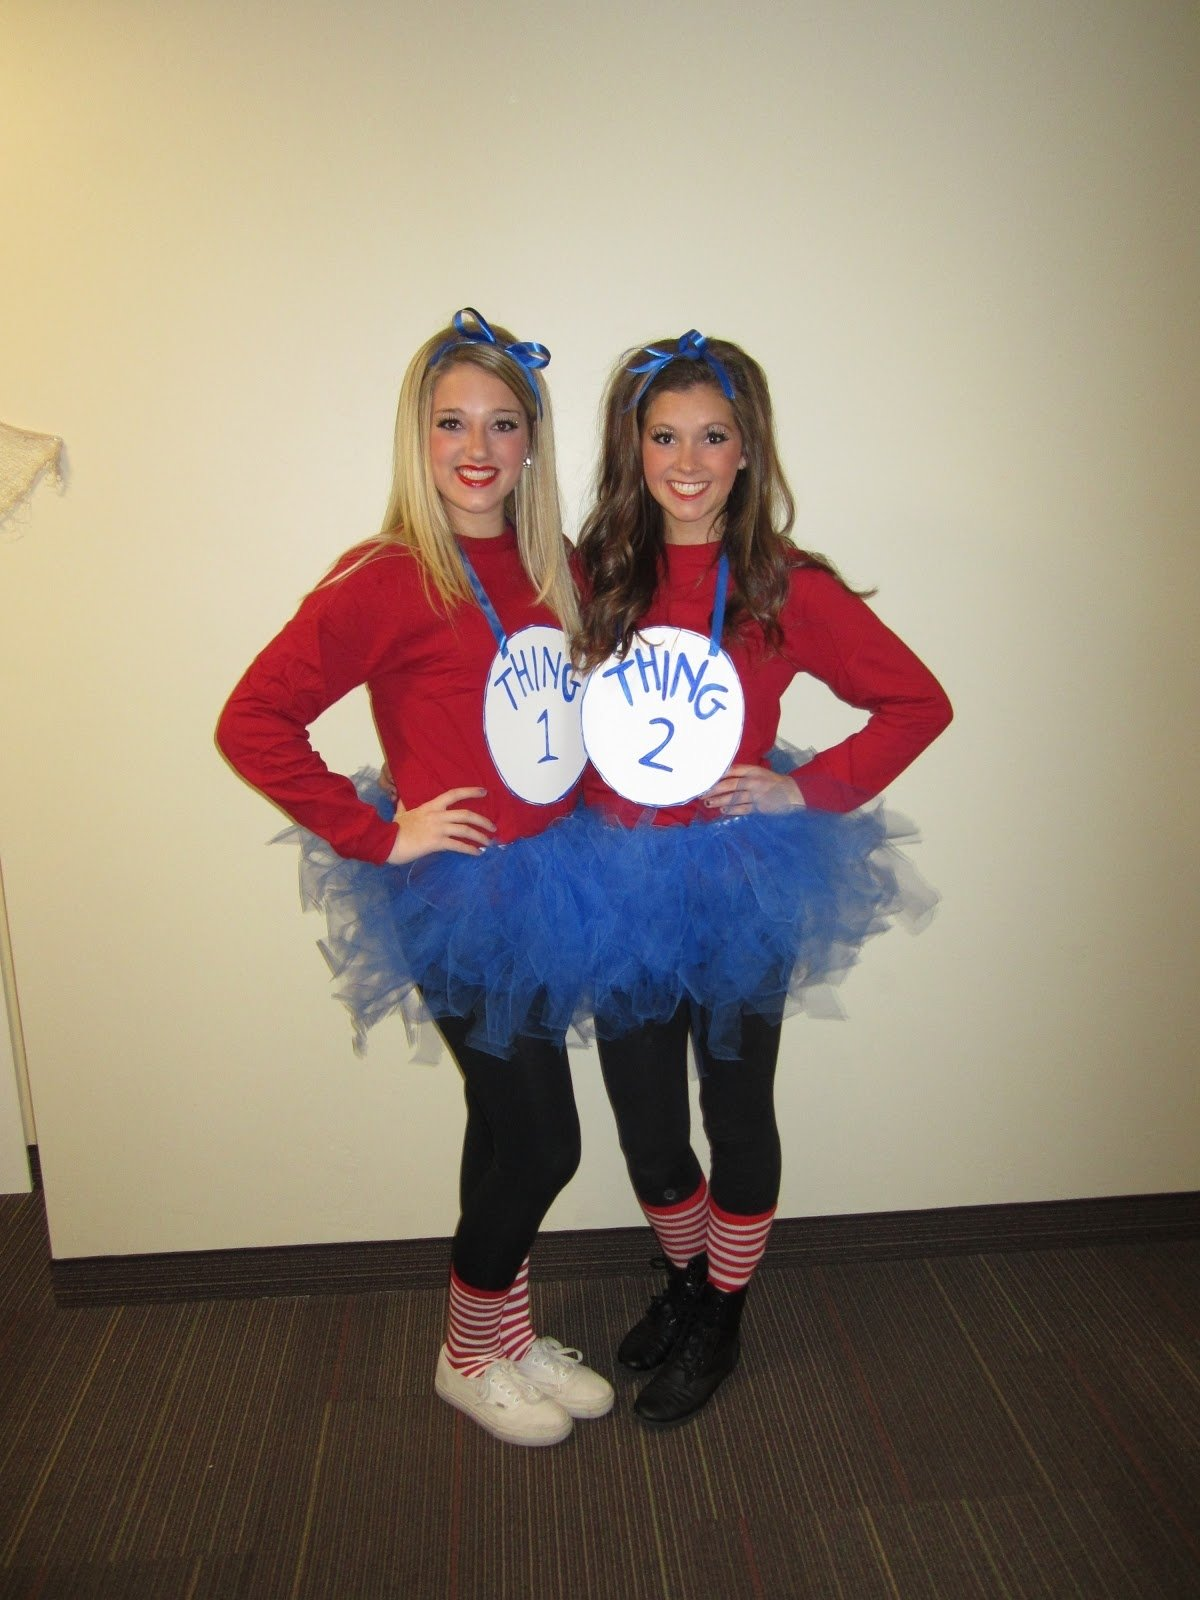 10 Elegant Costume Ideas For Two People images for thing one and thing two costumes halloween 8 2021